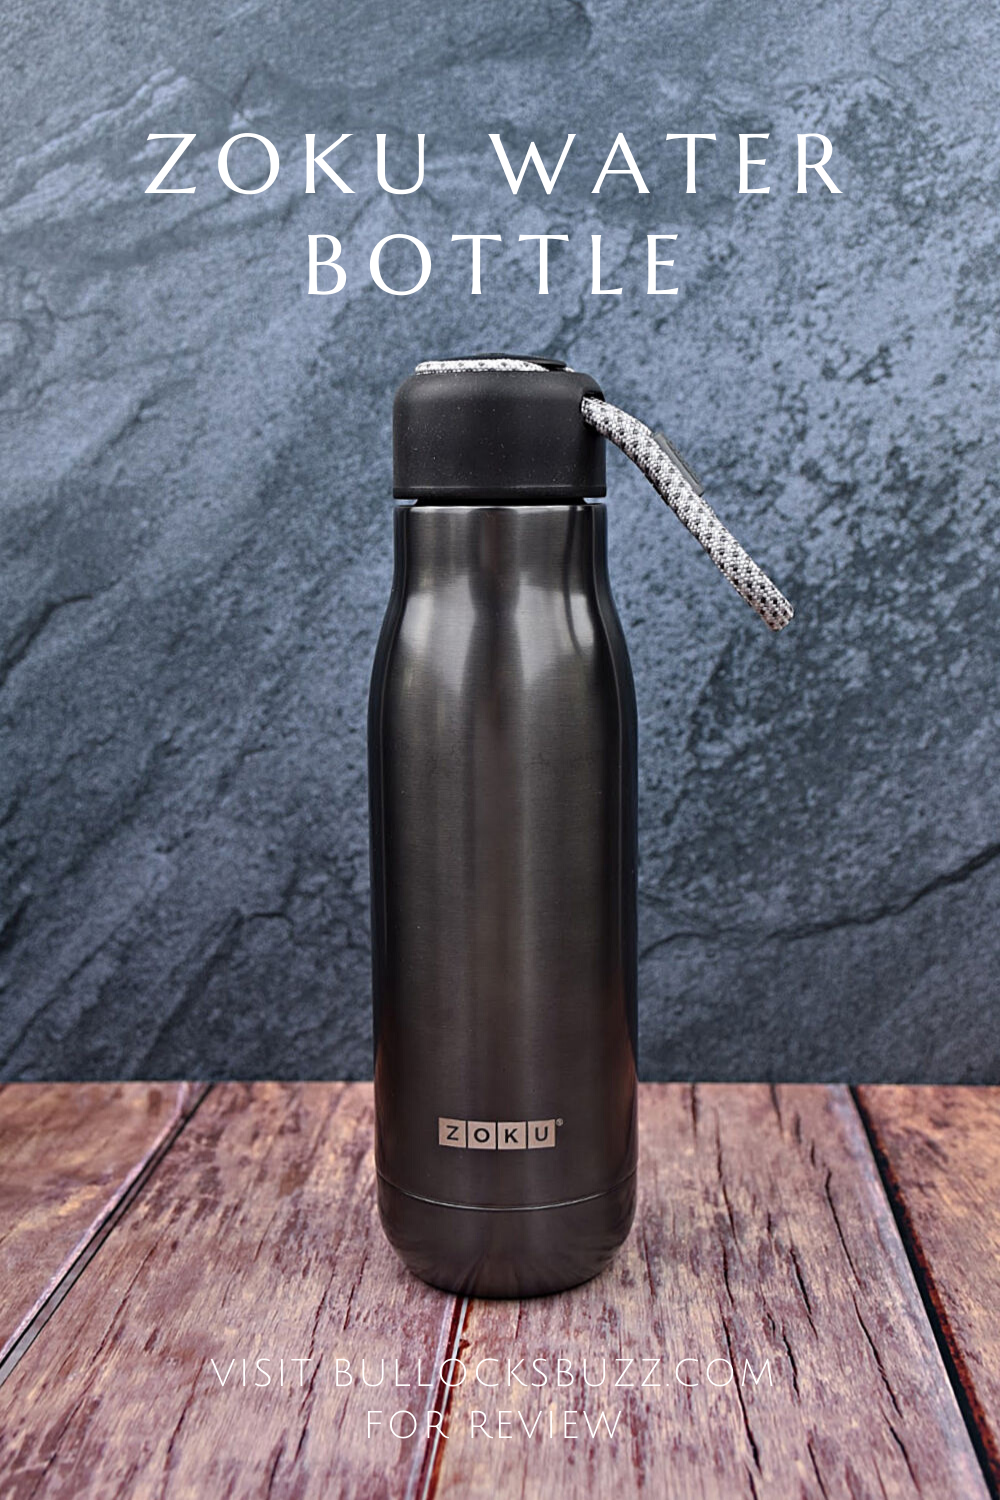 The best water bottles should be convenient, functional, and safe from harmful chemicals. The Zoku Stainless Steel Water Bottle is not only sleek and stylish, but it's also double-walled vacuum insulated, free from harmful chemicals, has a nifty lanyard for easy carrying, and much more!